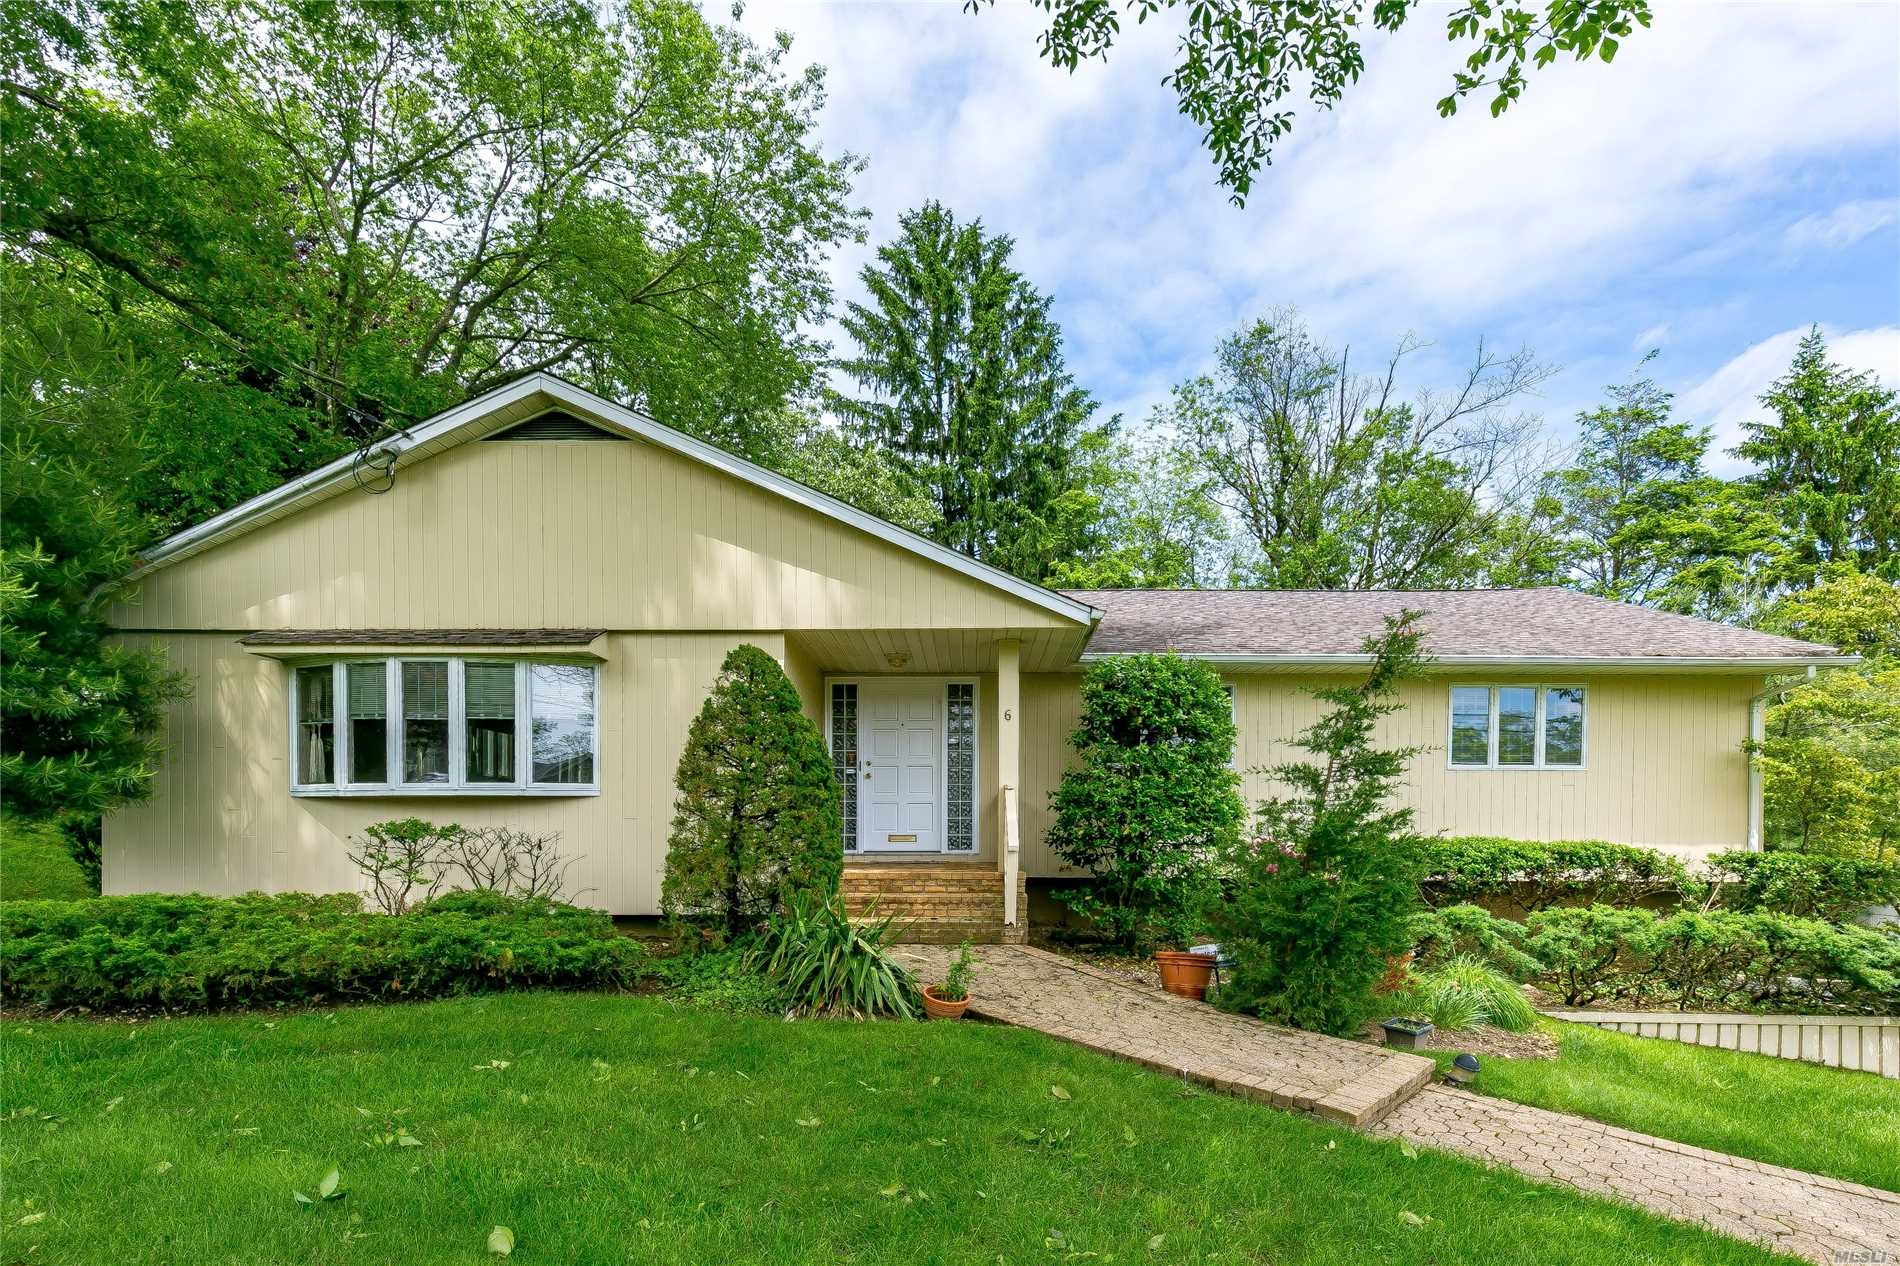 Chance Of A Lifetime! Damian Park Ranch With 3/4 Bedrooms, 3 Full Bathrooms, New Roof, New Deck, New Driveway, New Hot Water Heater/Boiler, Cac, Priced To Sell! Low Taxes, Finished Basement, 2 Car Garage, Plainview Parks, Easy Access To Expressways!